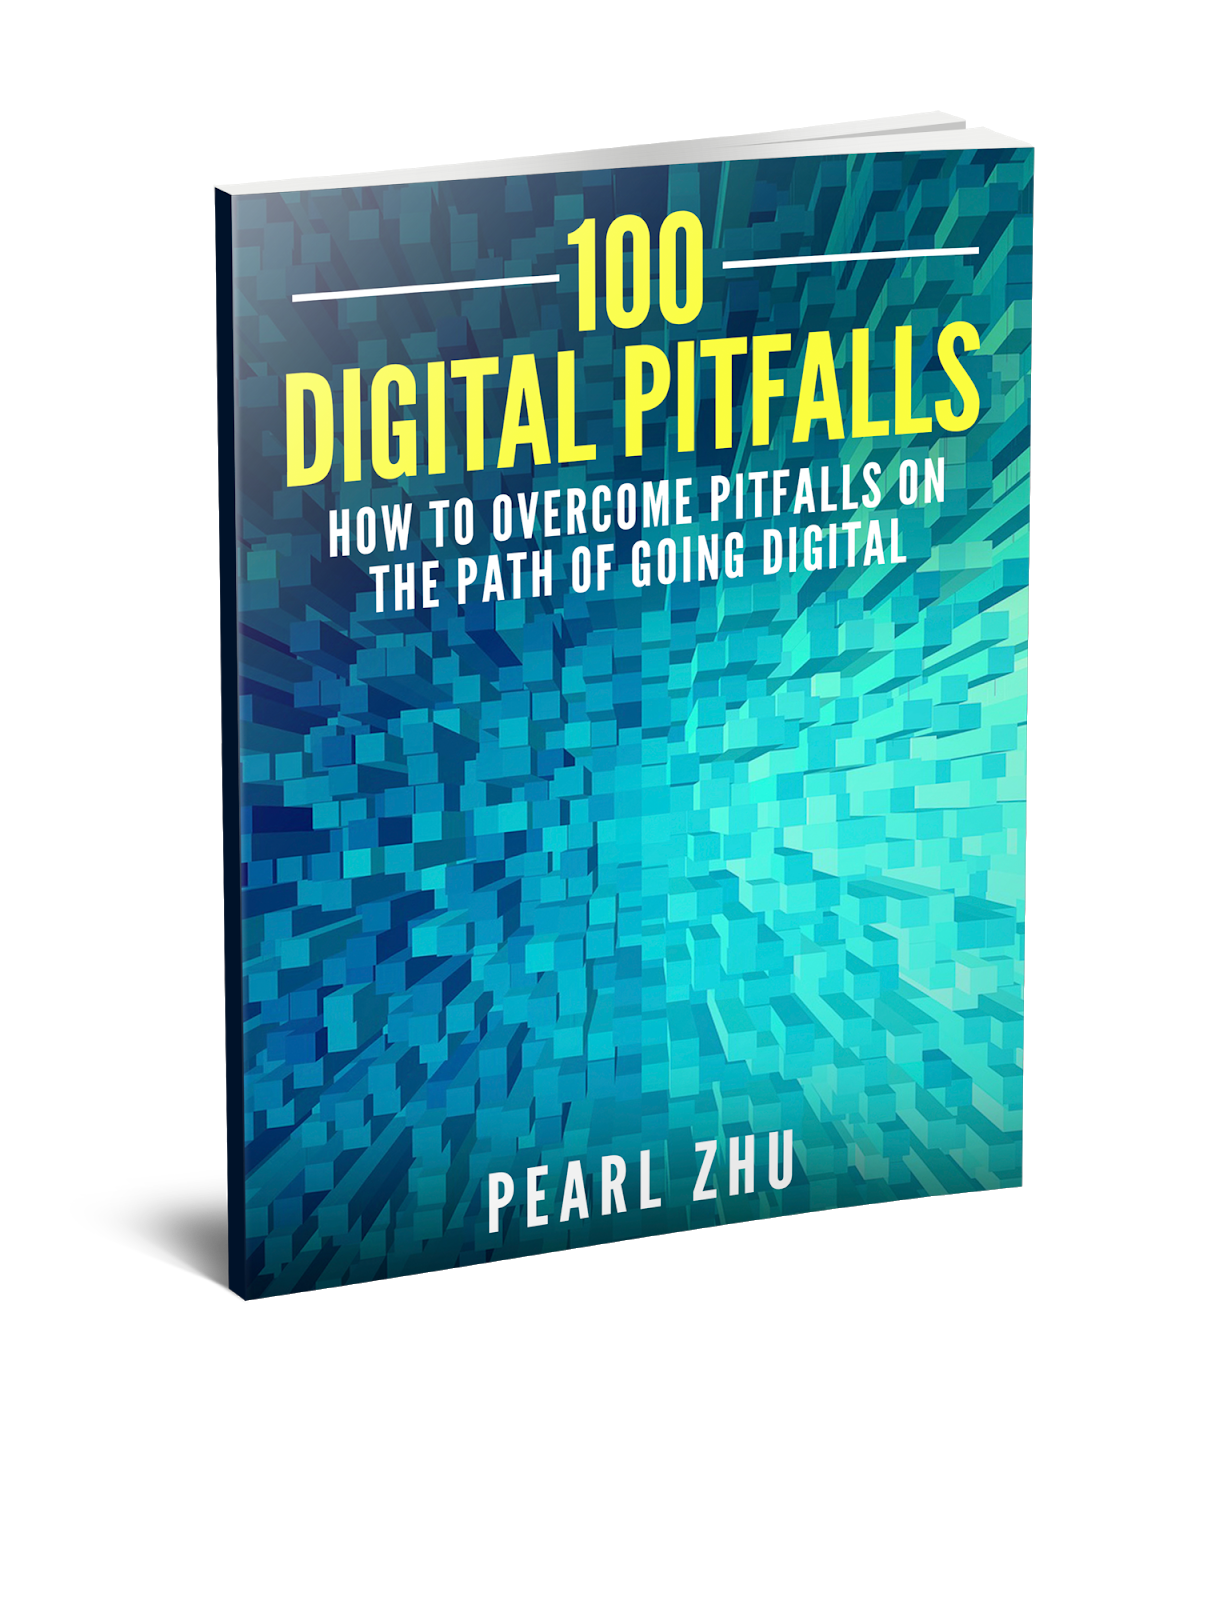 100 Digital Pitfalls